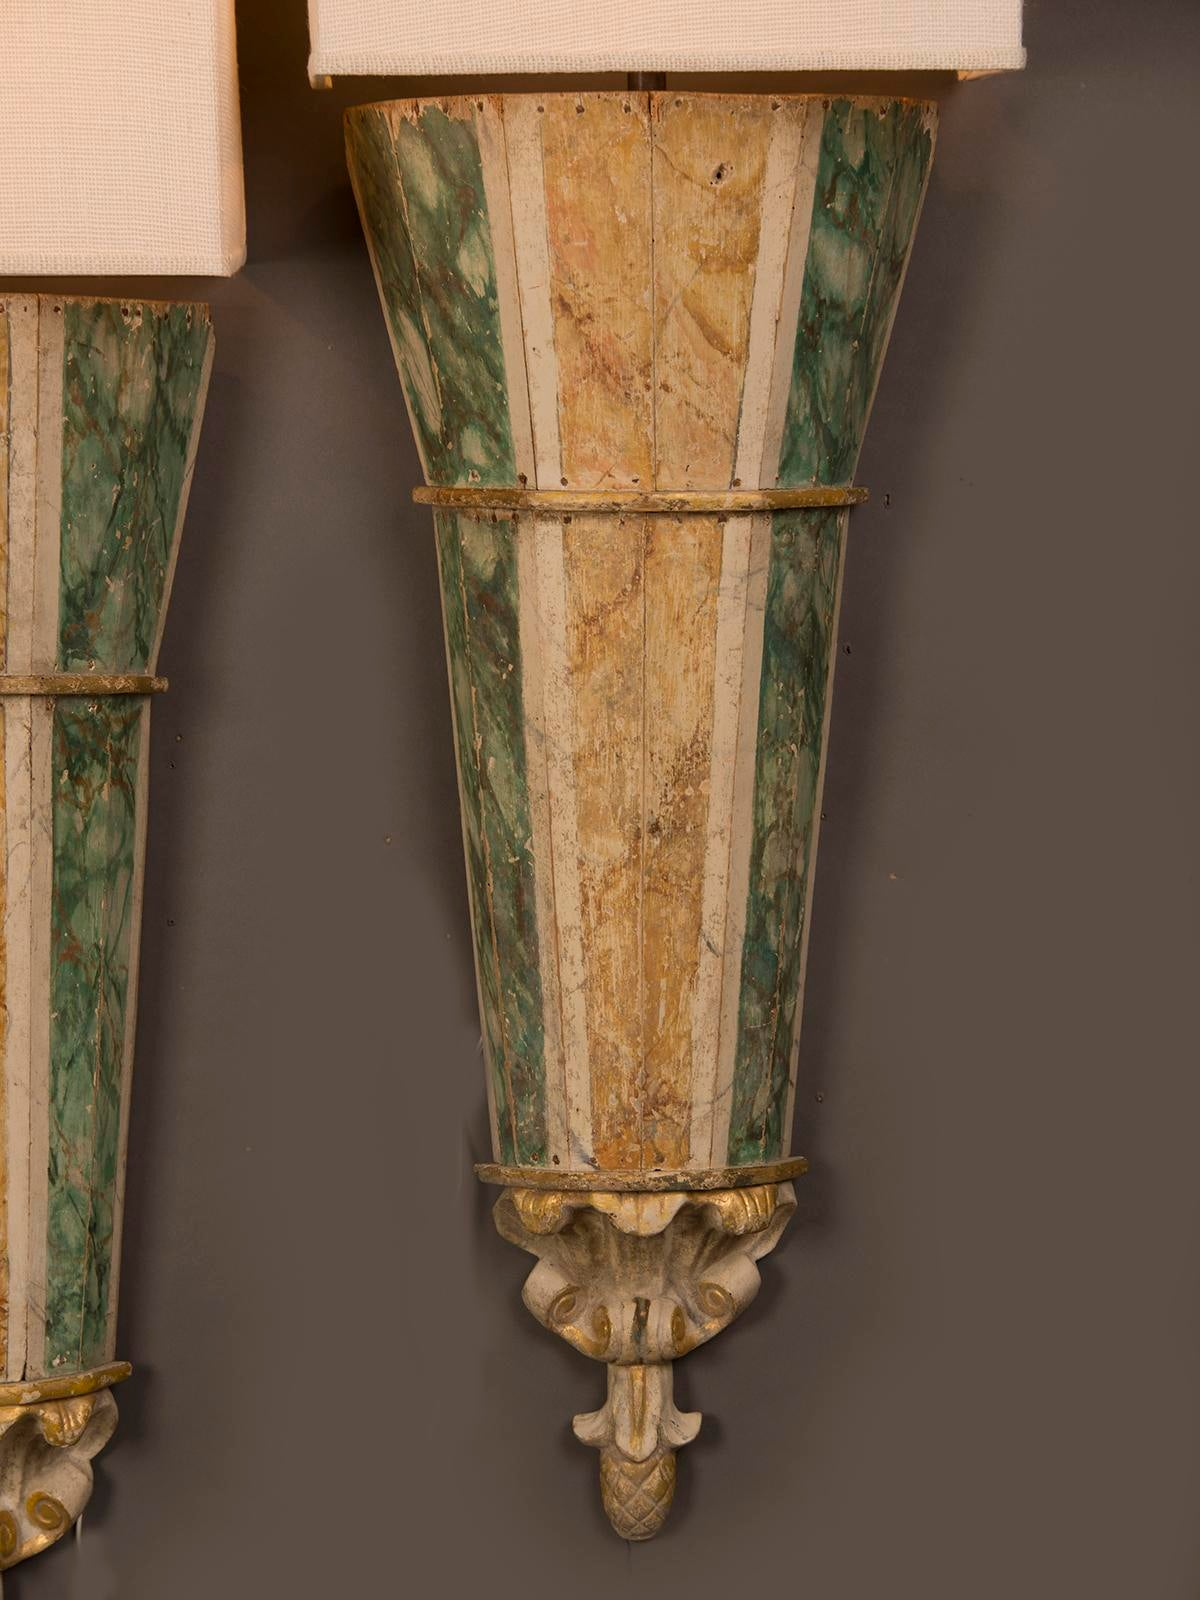 Pair of Grand Italian Sconces Original Painted Finish circa 1820 - Image 9 of 11  sc 1 st  Decaso : italian sconces - www.canuckmediamonitor.org